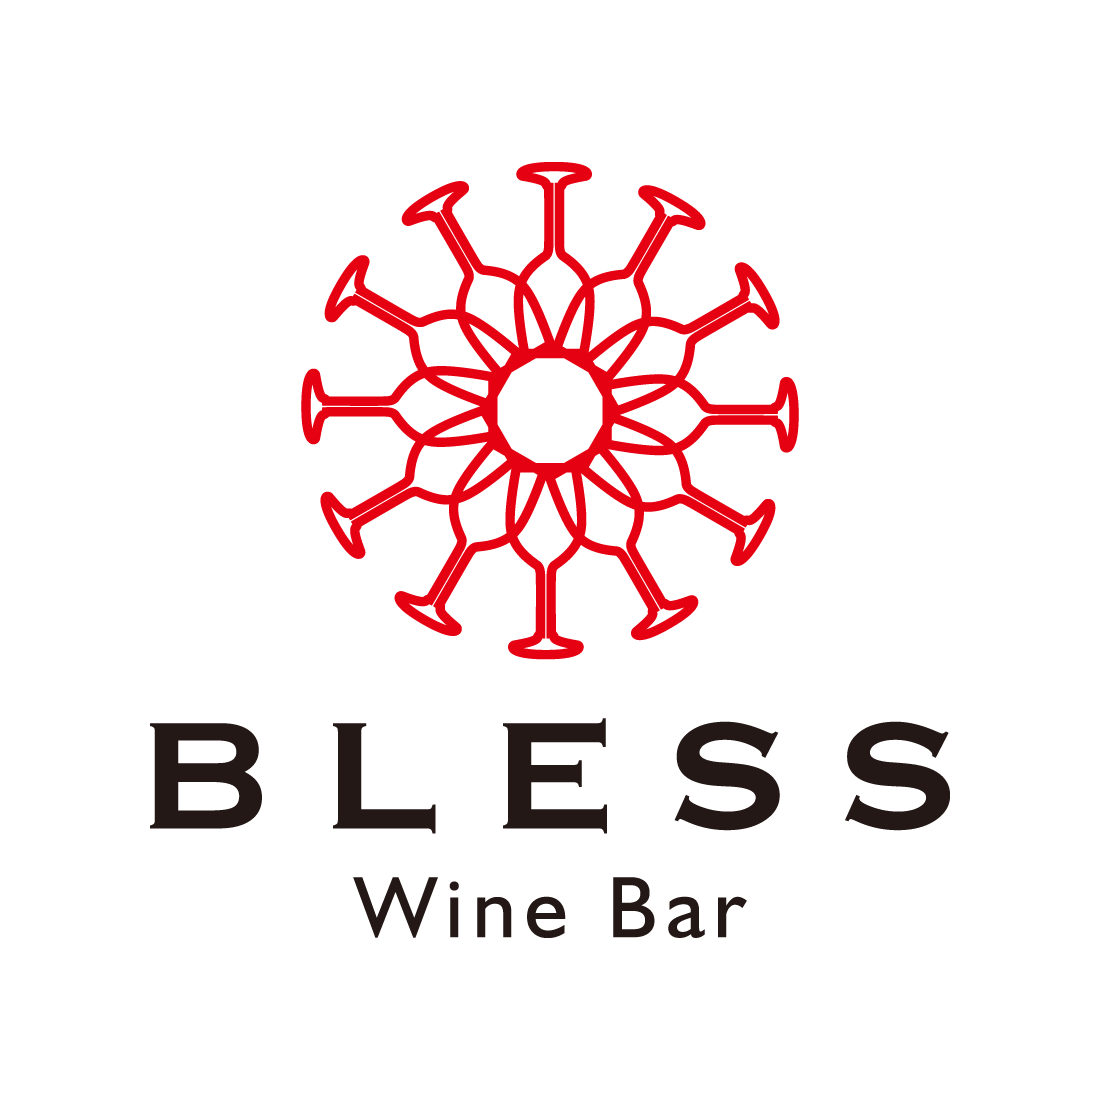 Wine Bar BLESS